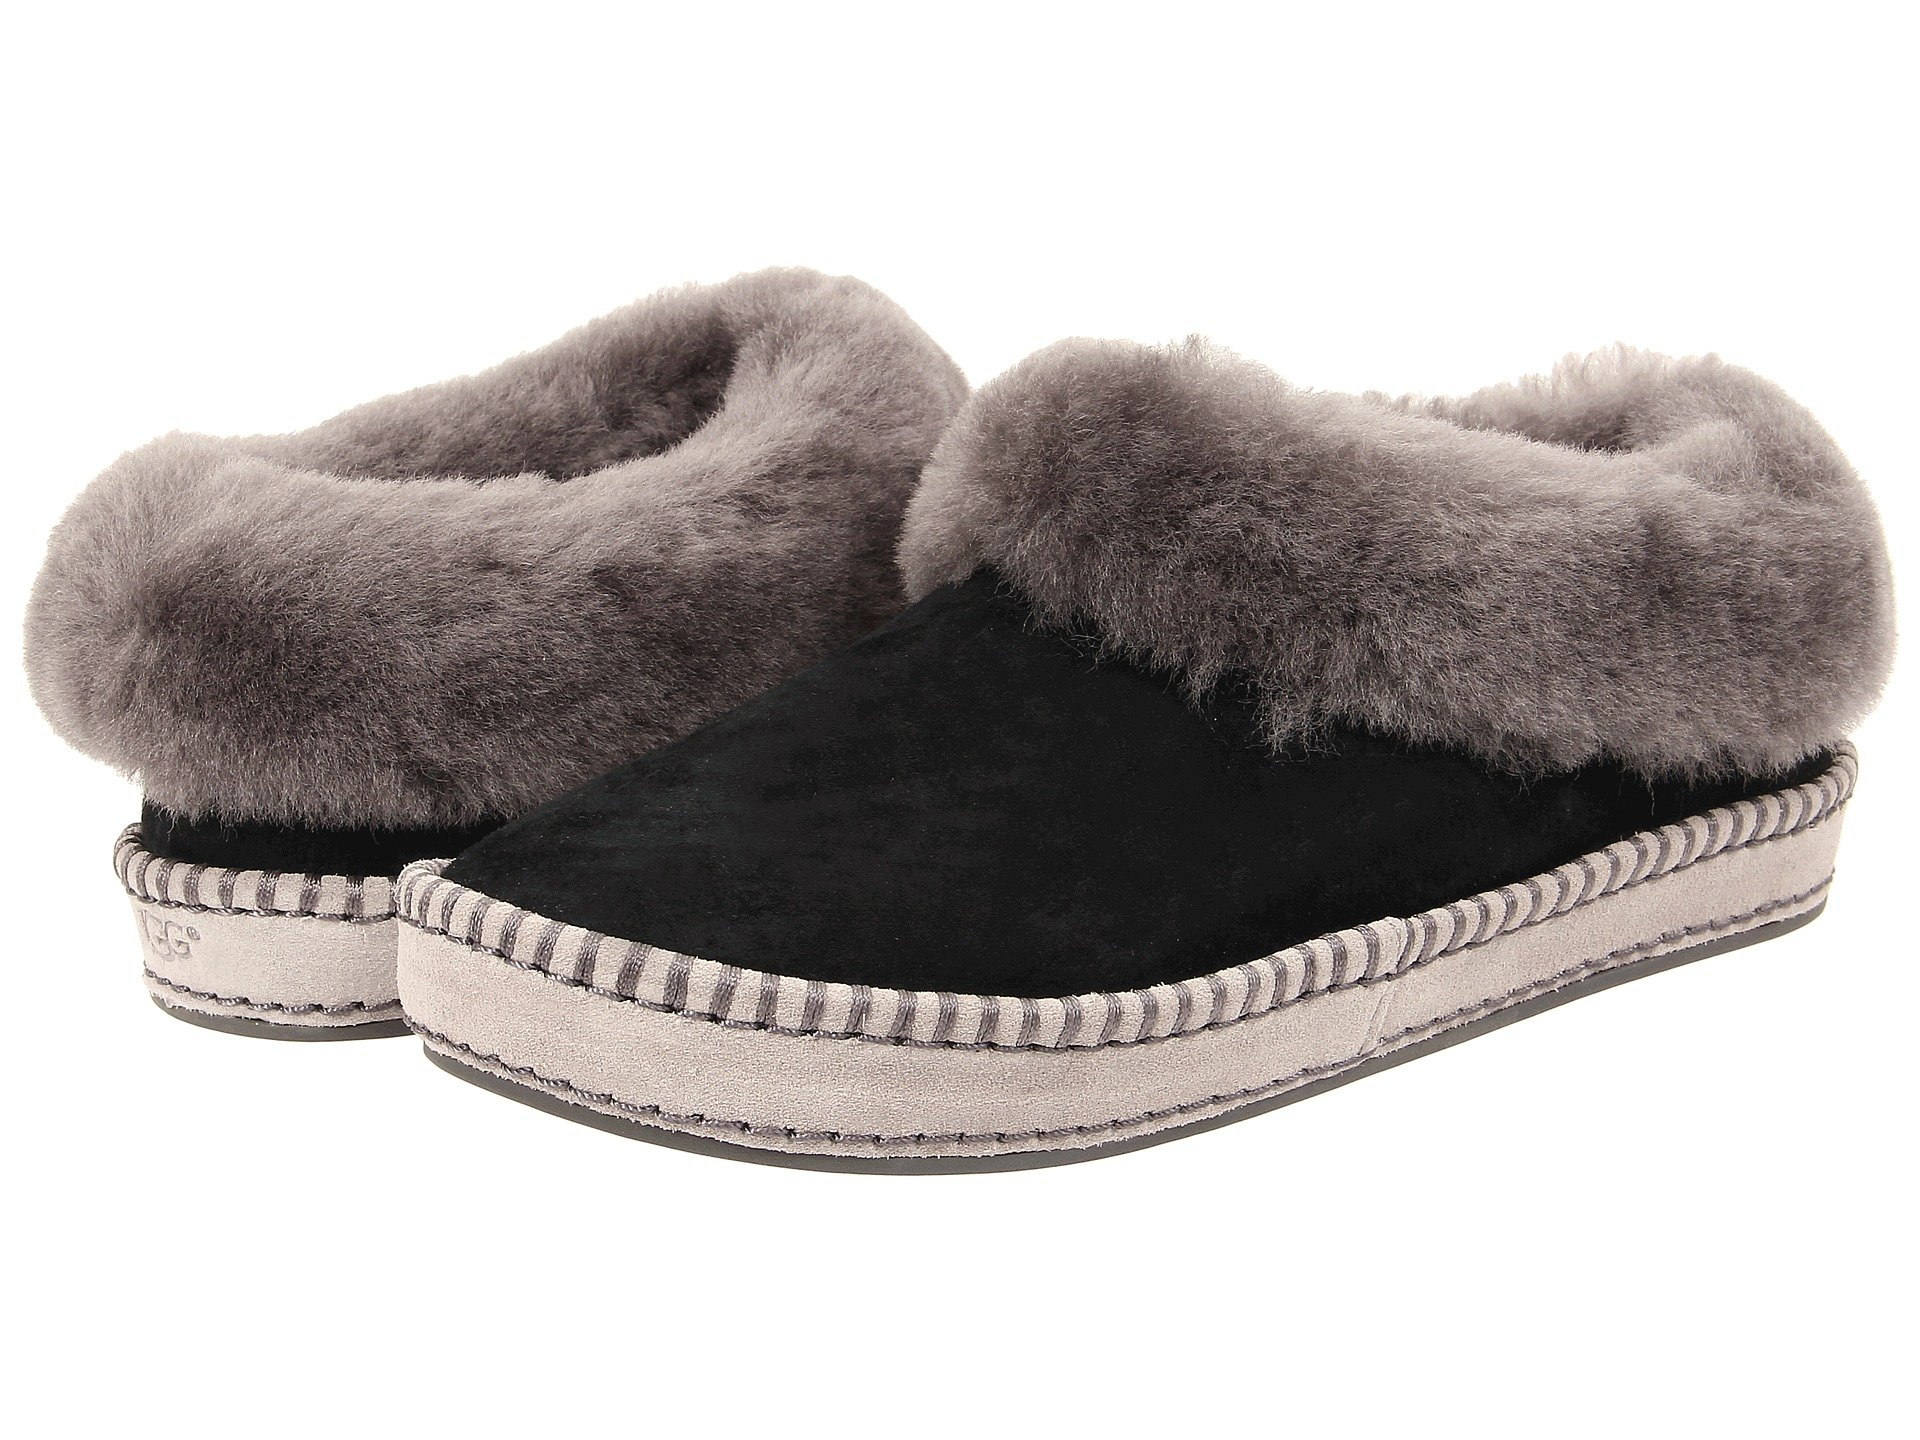 e92c942d751 Women's UGG Slippers + FREE SHIPPING | Shoes | Zappos.com